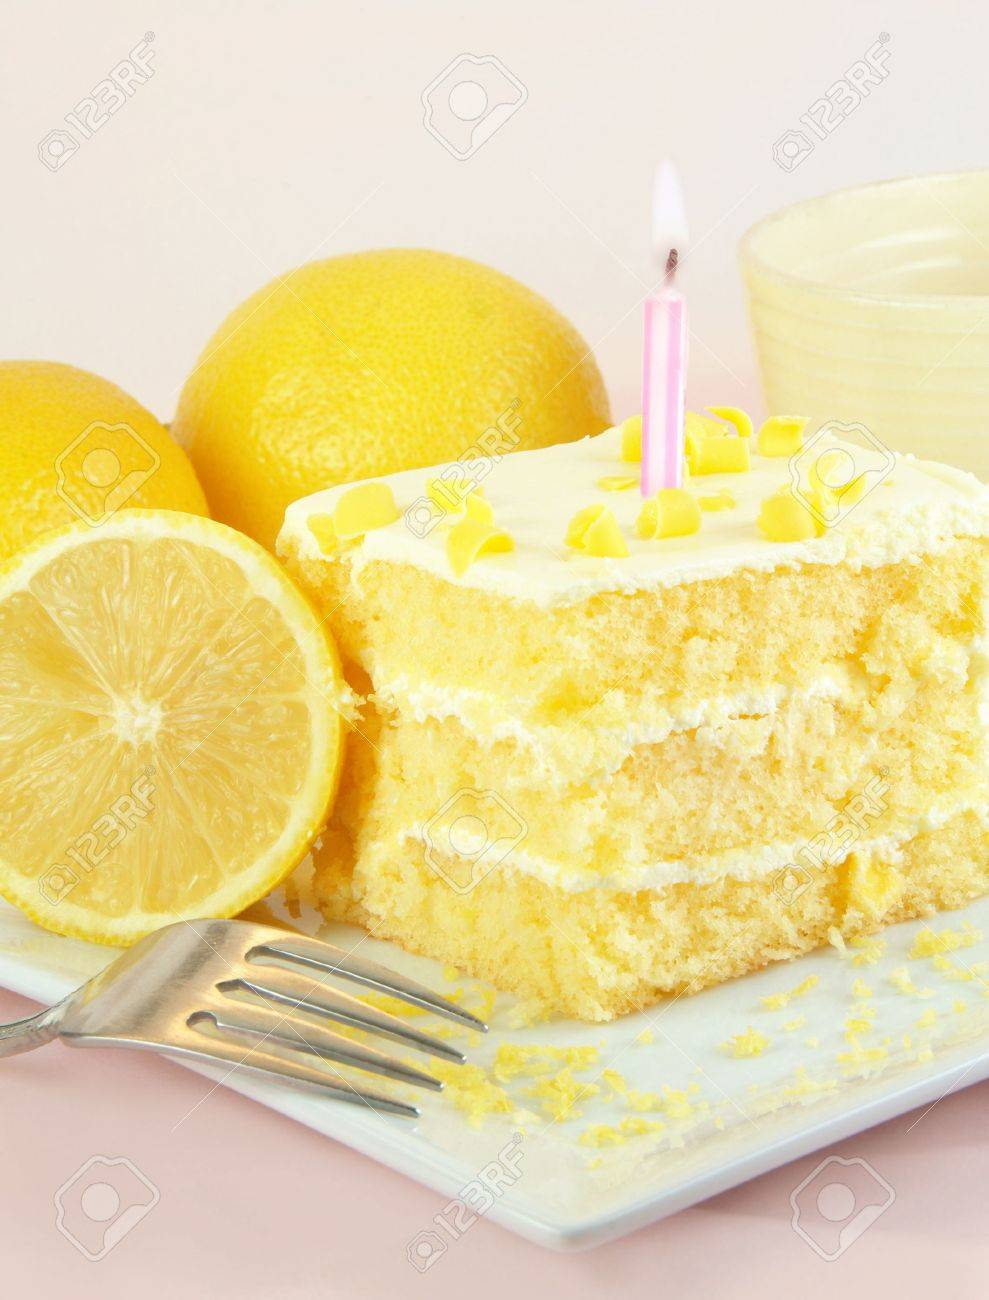 Lemon Birthday Cake With One Lit Candle Lemons And Fork On